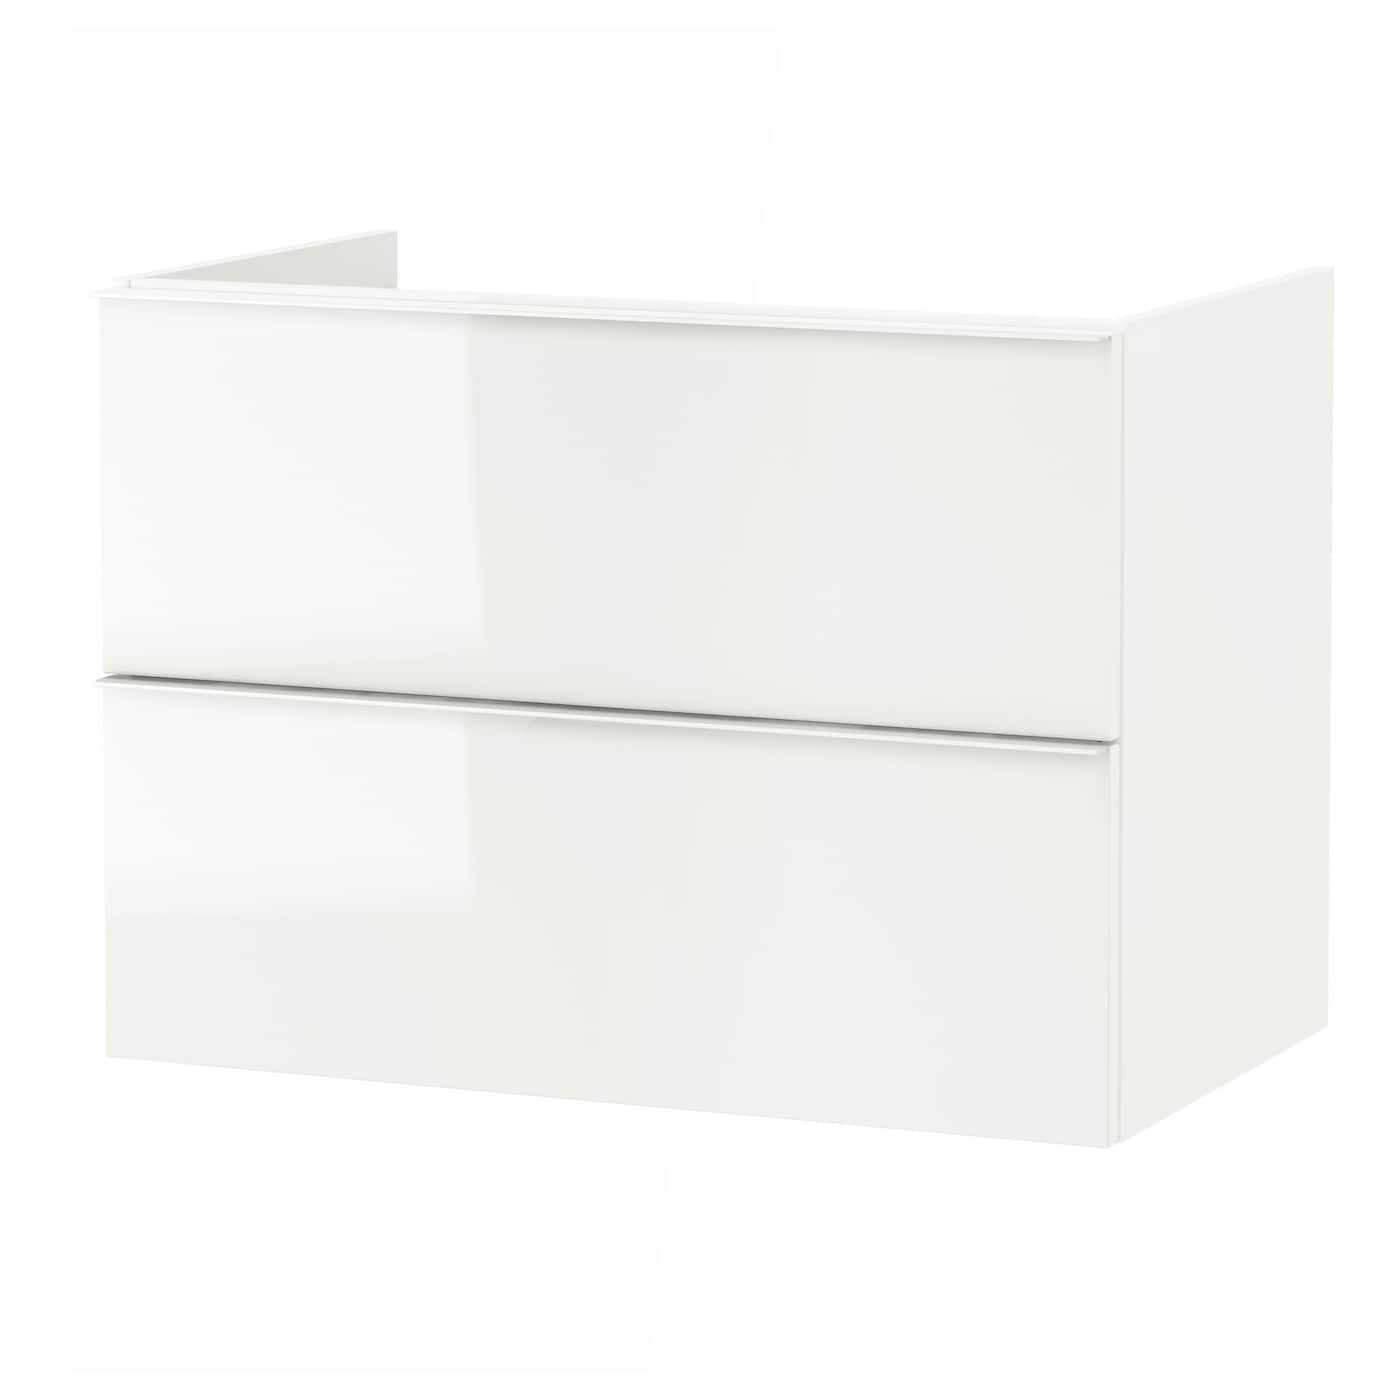 godmorgon wash stand with 2 drawers high gloss white 80 x 47 x 58 cm ikea. Black Bedroom Furniture Sets. Home Design Ideas